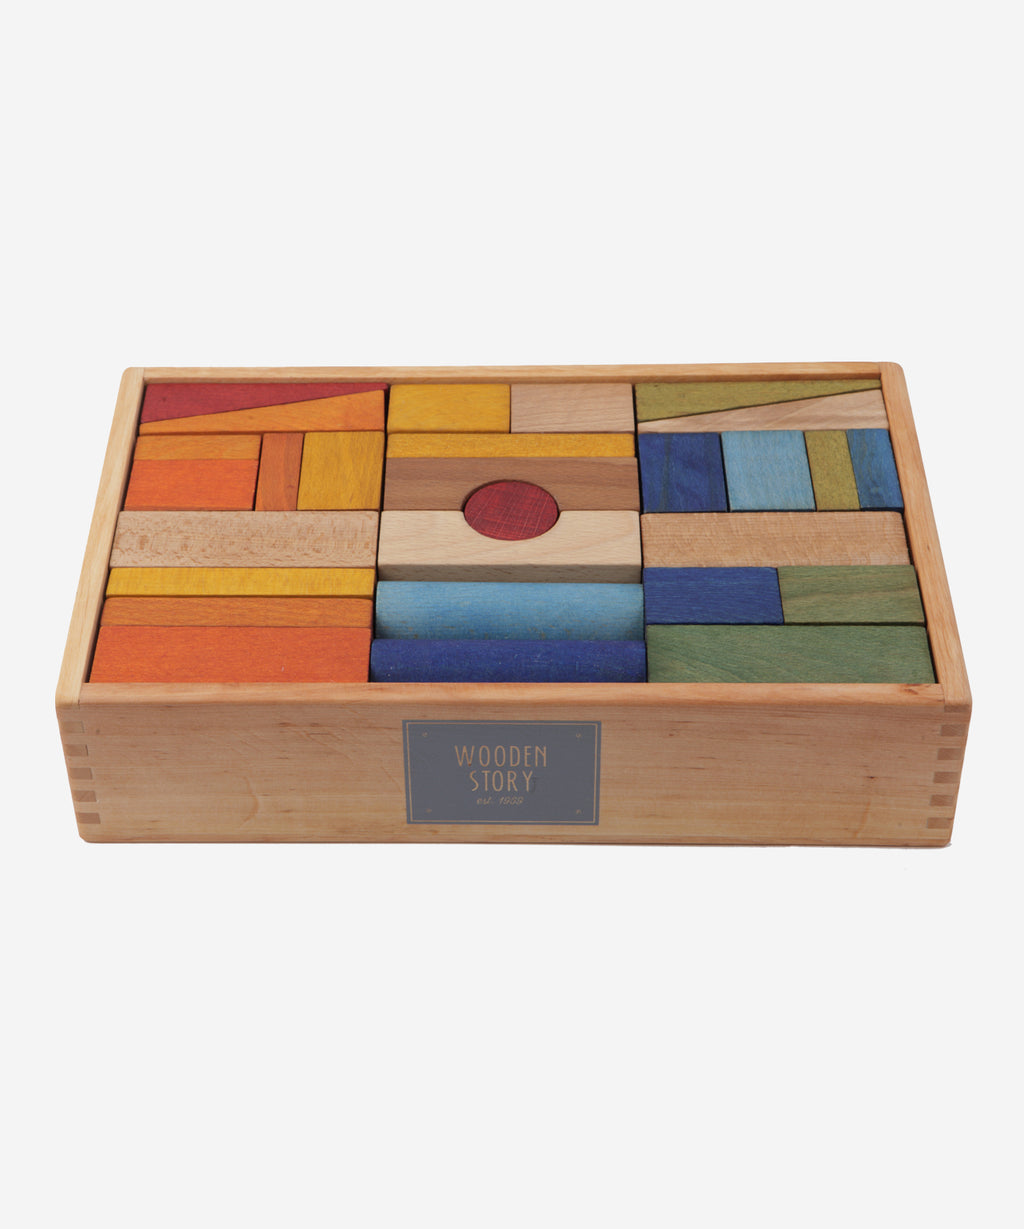 Wooden Story - Rainbow Blocks in Tray XL - 63pcs